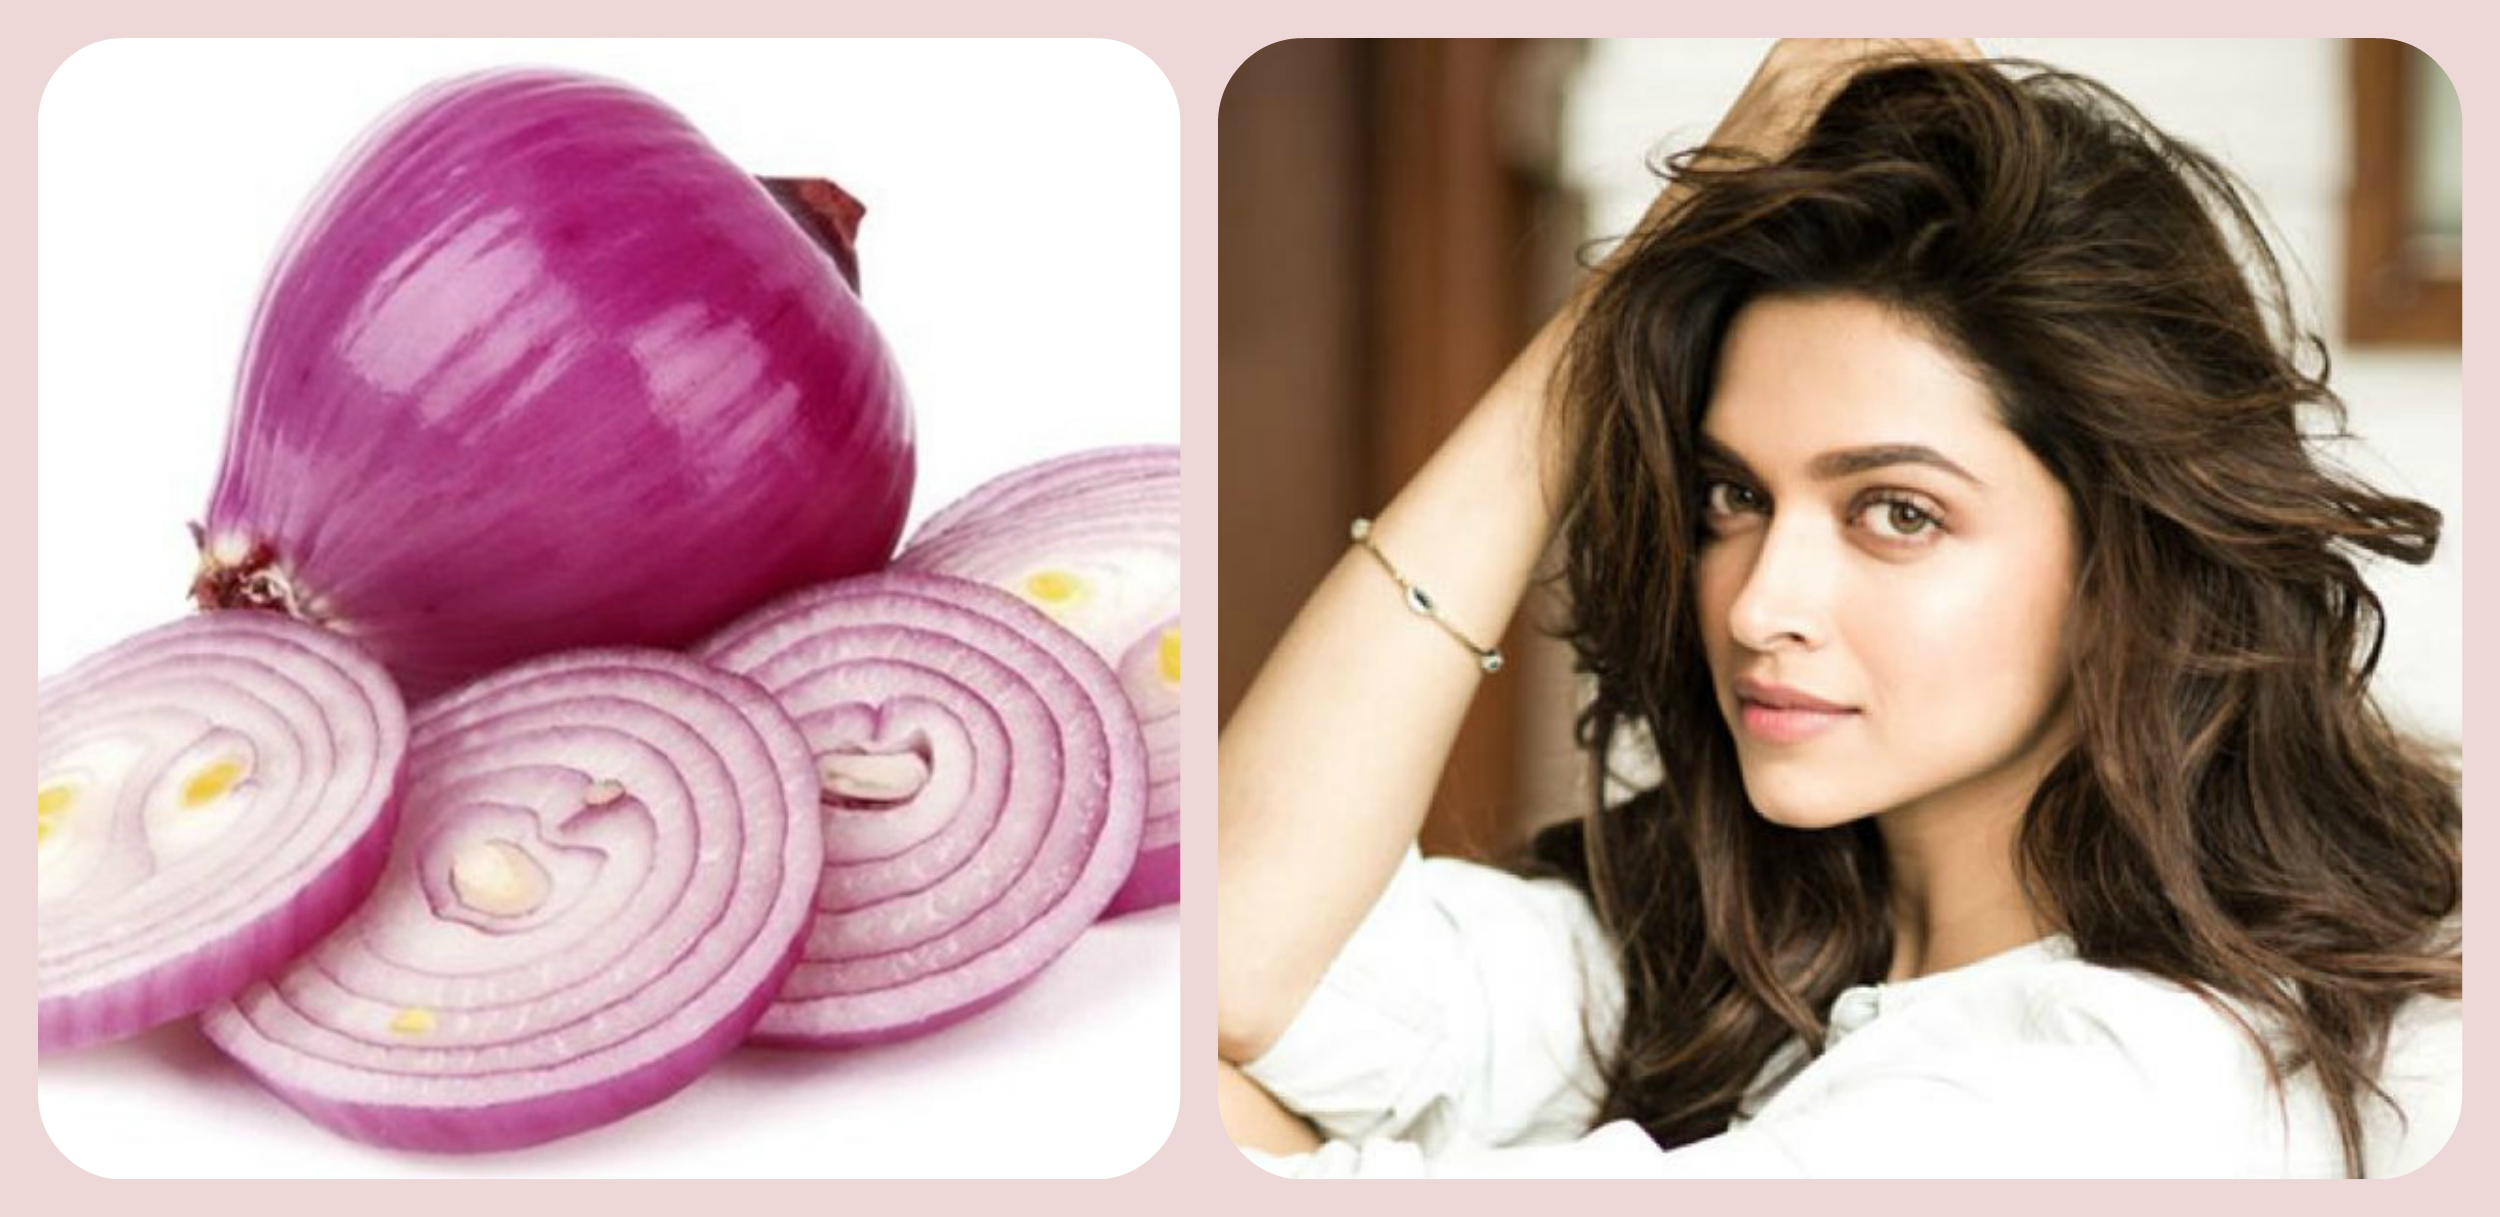 9 surprising health and beauty benefits of raw onions